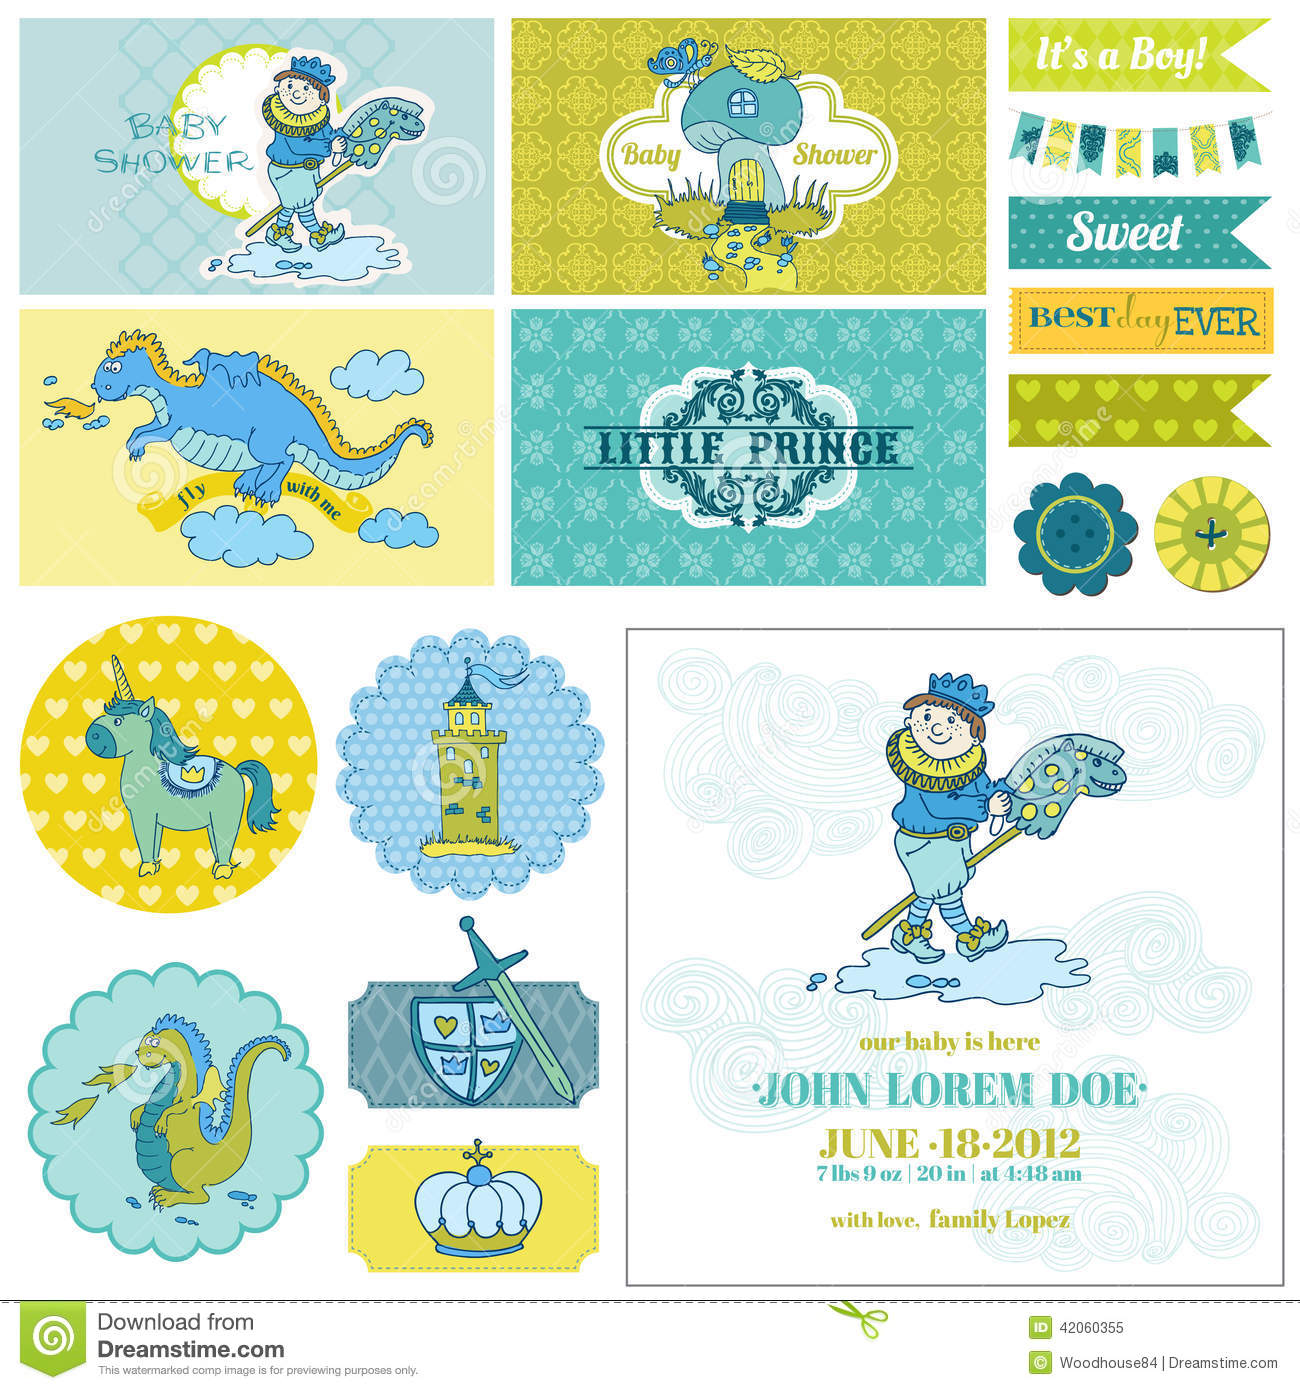 Baby Shower Little Prince Boy Set